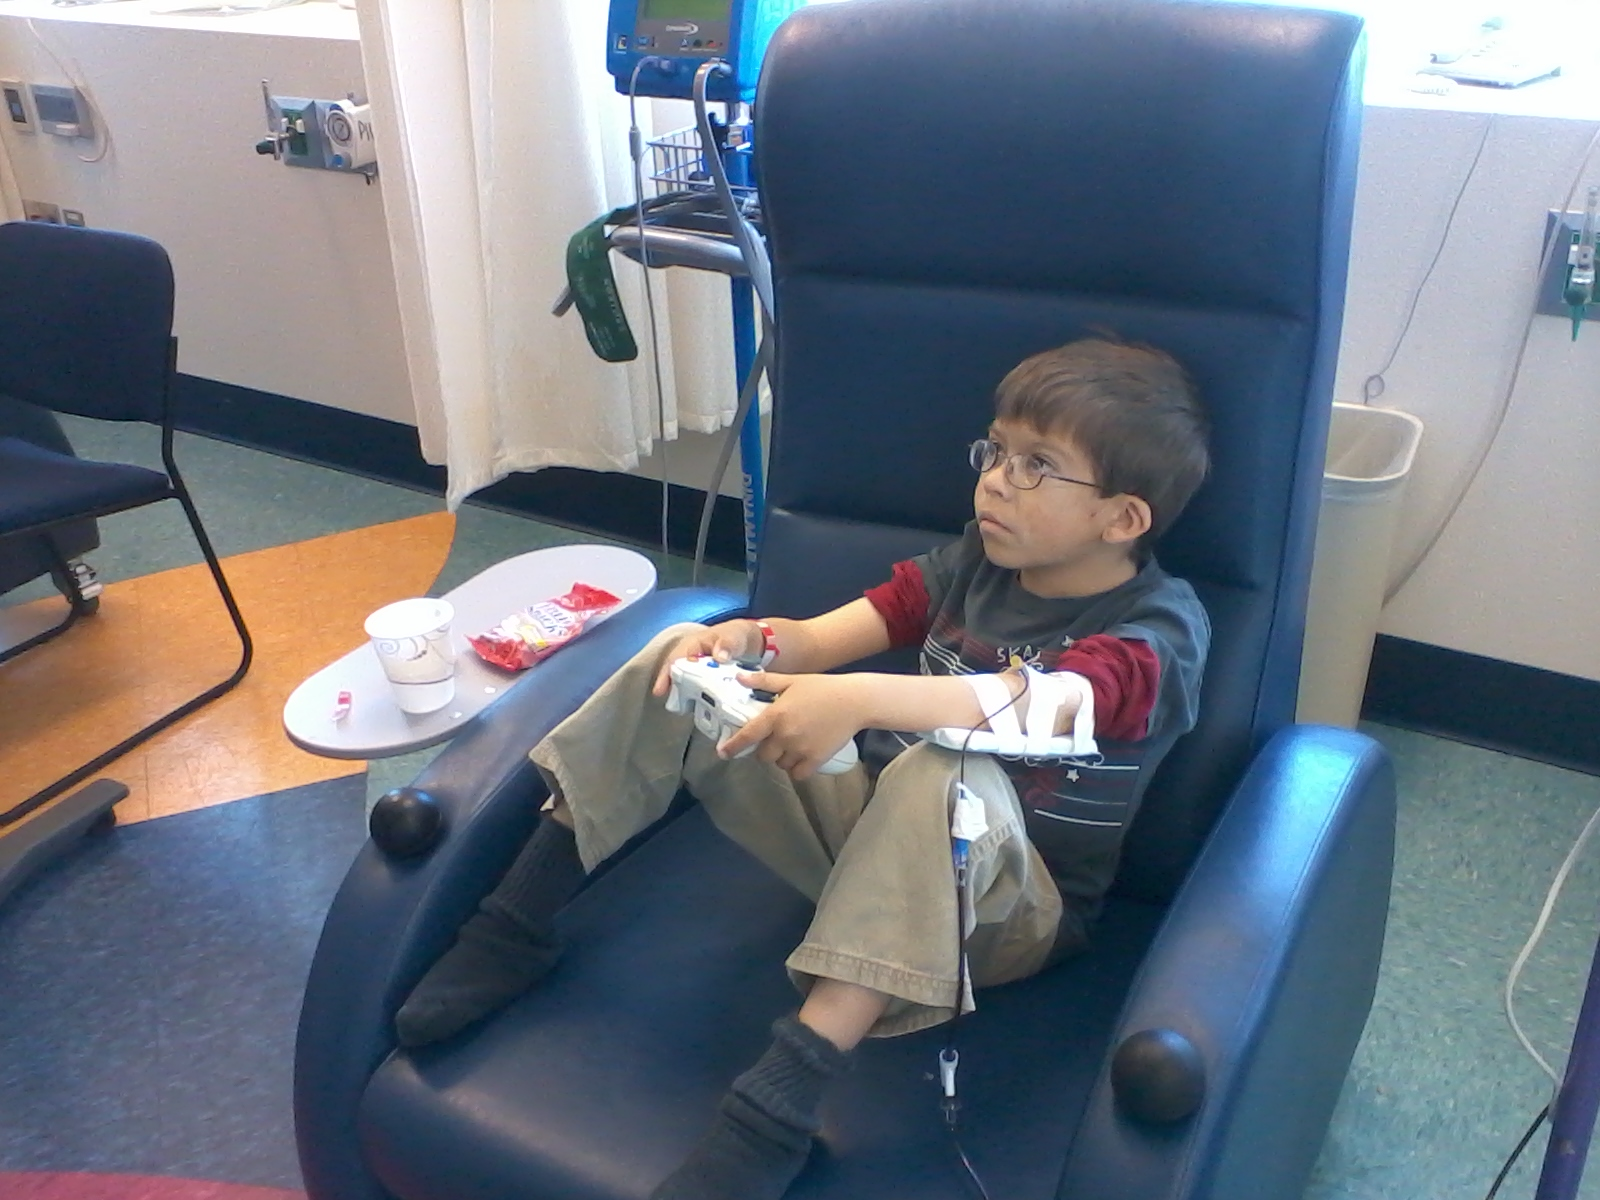 Child Playing Charity Gaming Cart